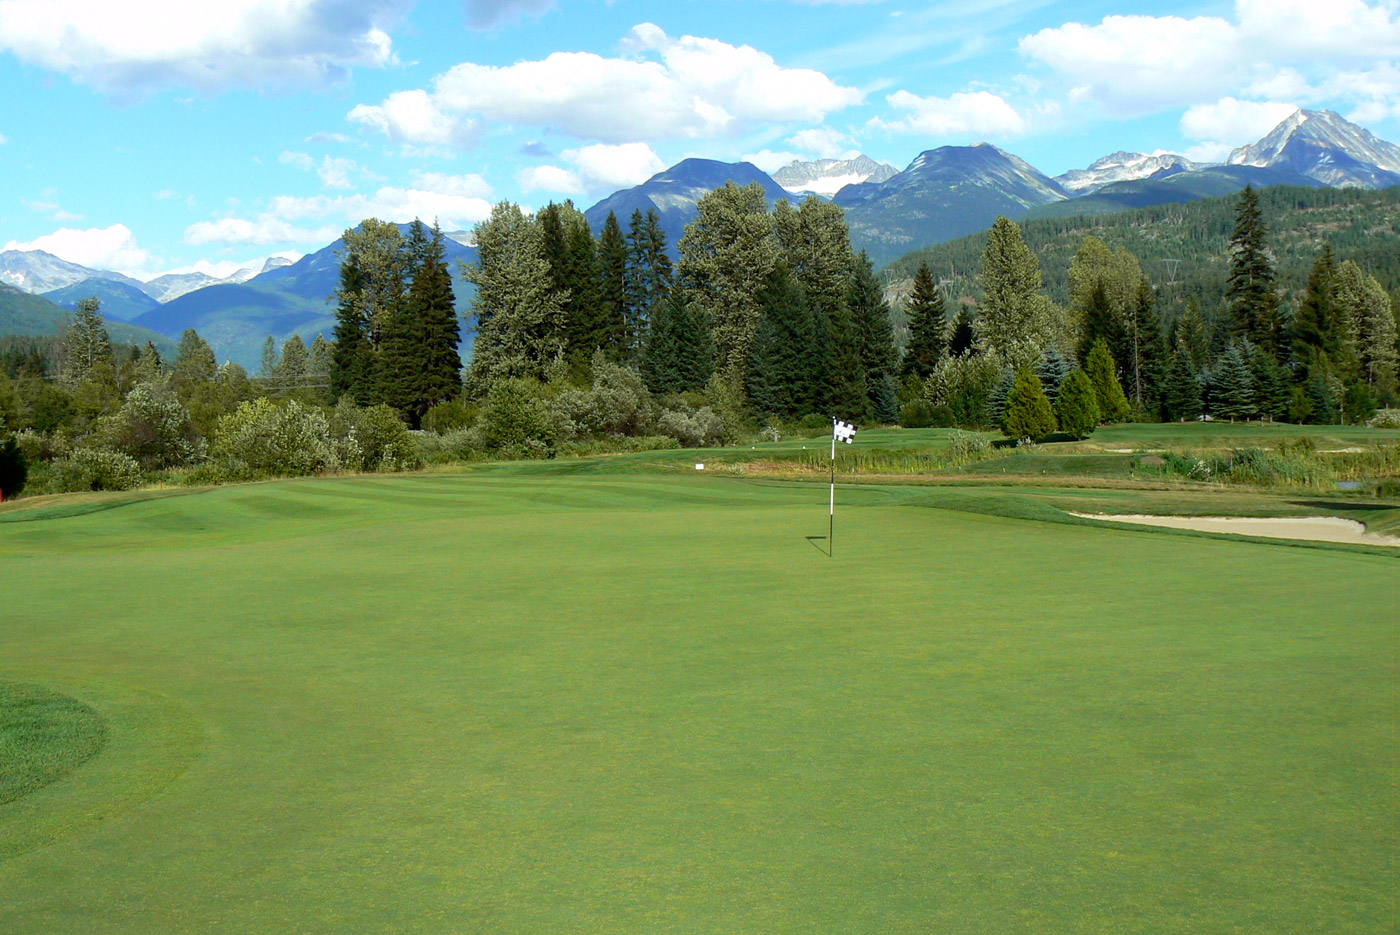 Loyalty Rewards Program >> Nicklaus North Golf Course - Photo Gallery - Whistler Golf in British Columbia Canada near Vancouver